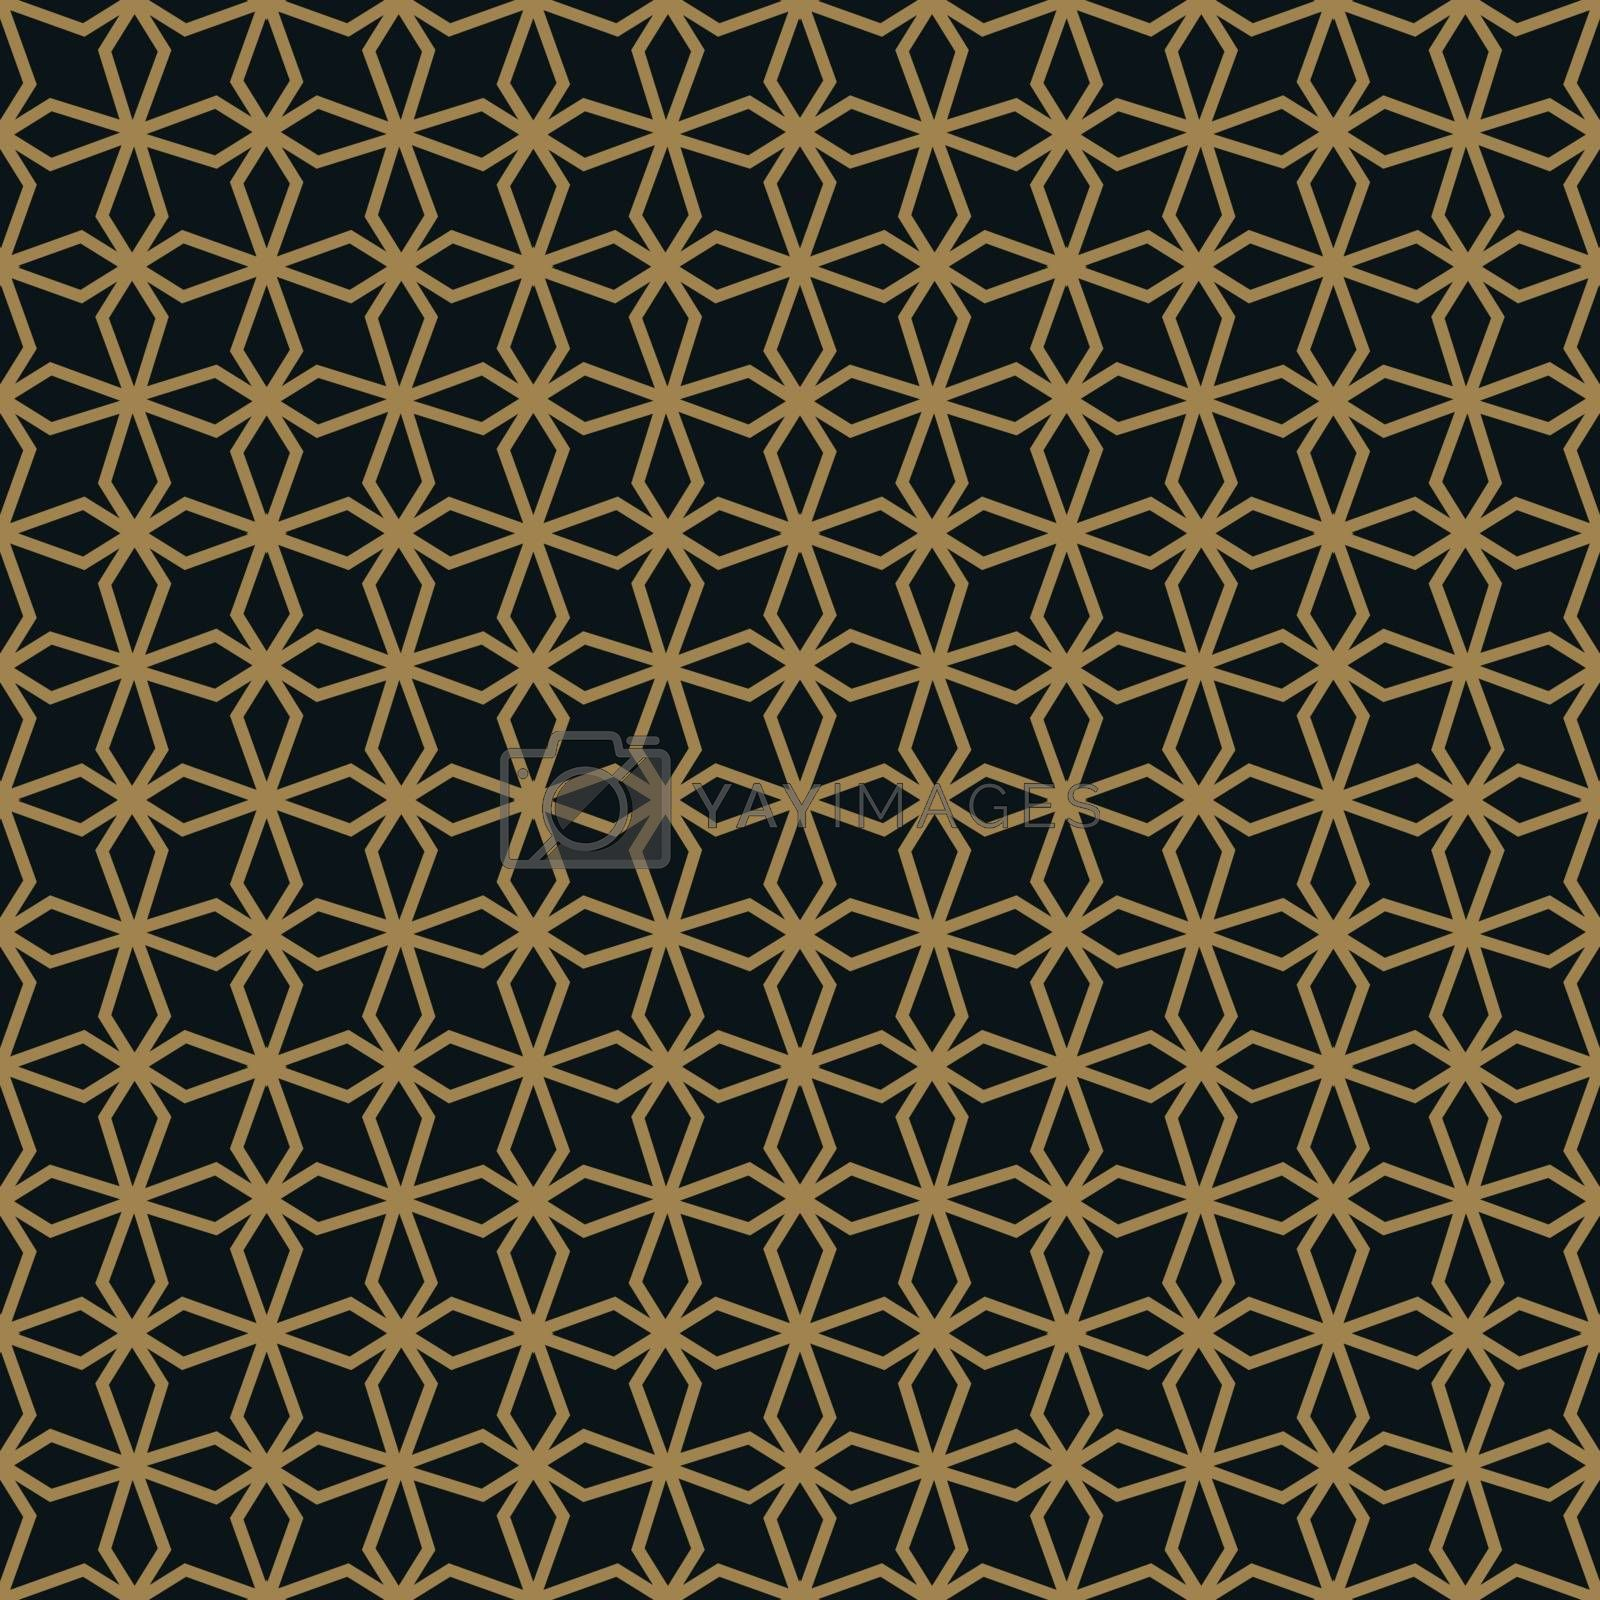 Seamless pattern with line ornament. Abstract modern geometric vector background.